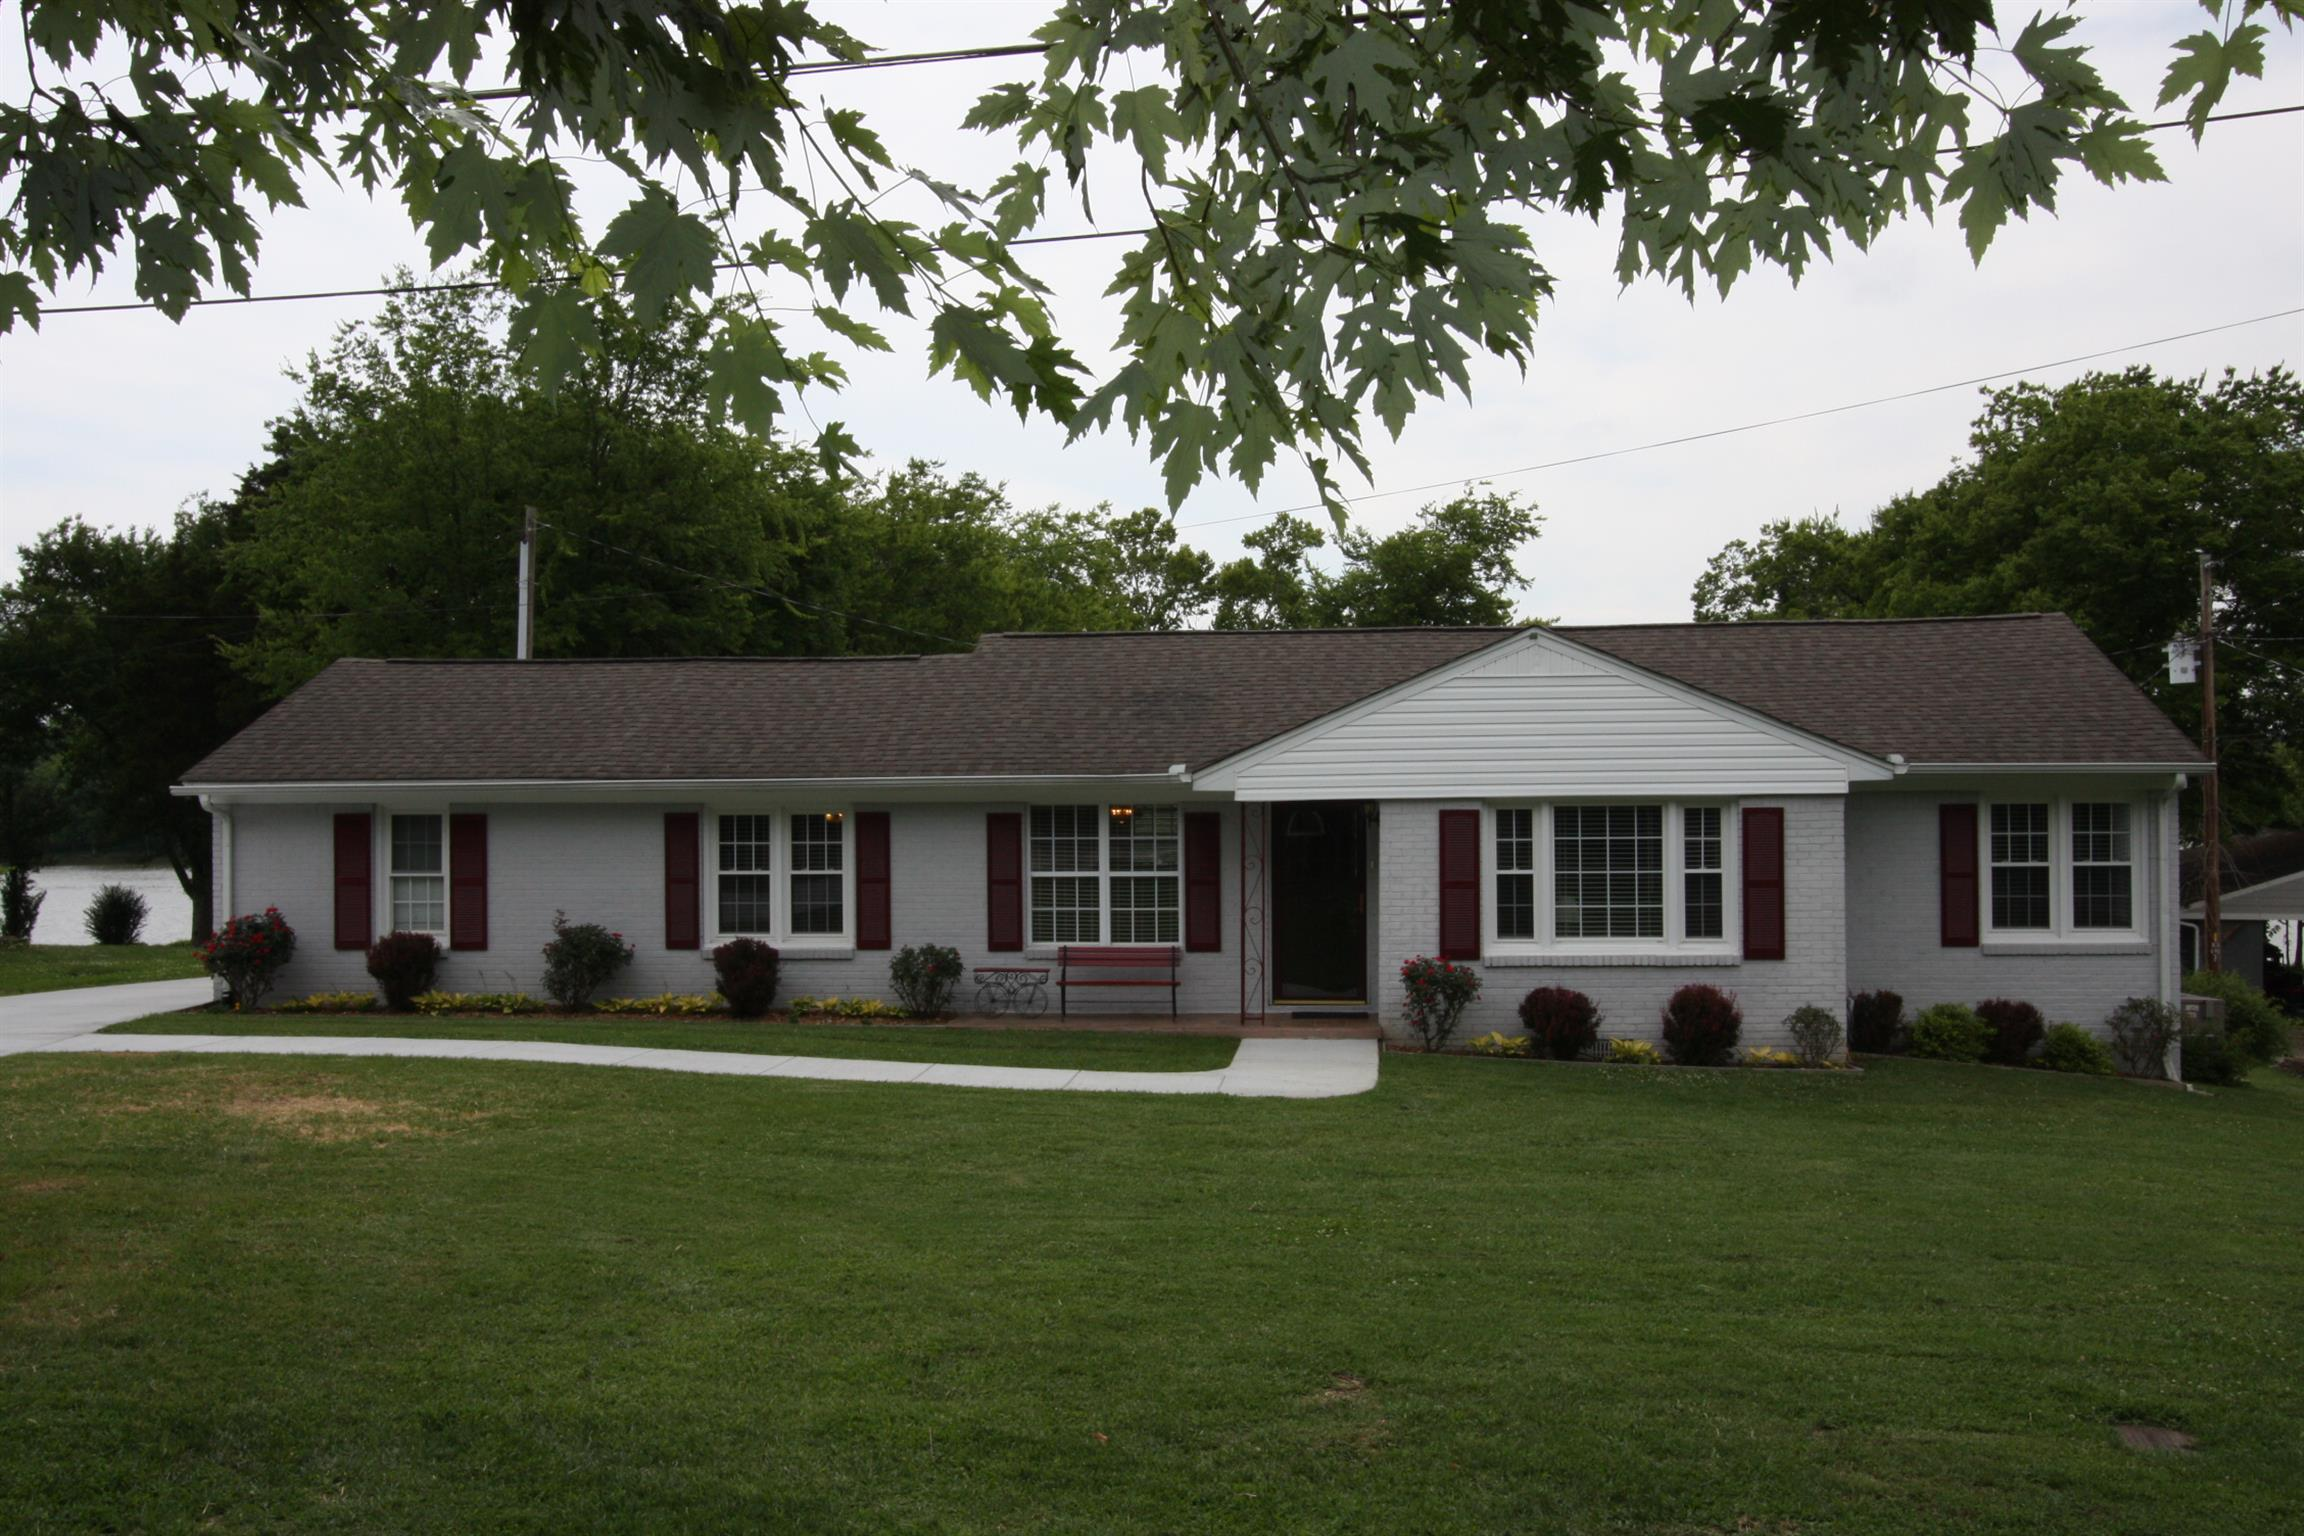 1068 Lock 4 Rd, Gallatin in Sumner County County, TN 37066 Home for Sale